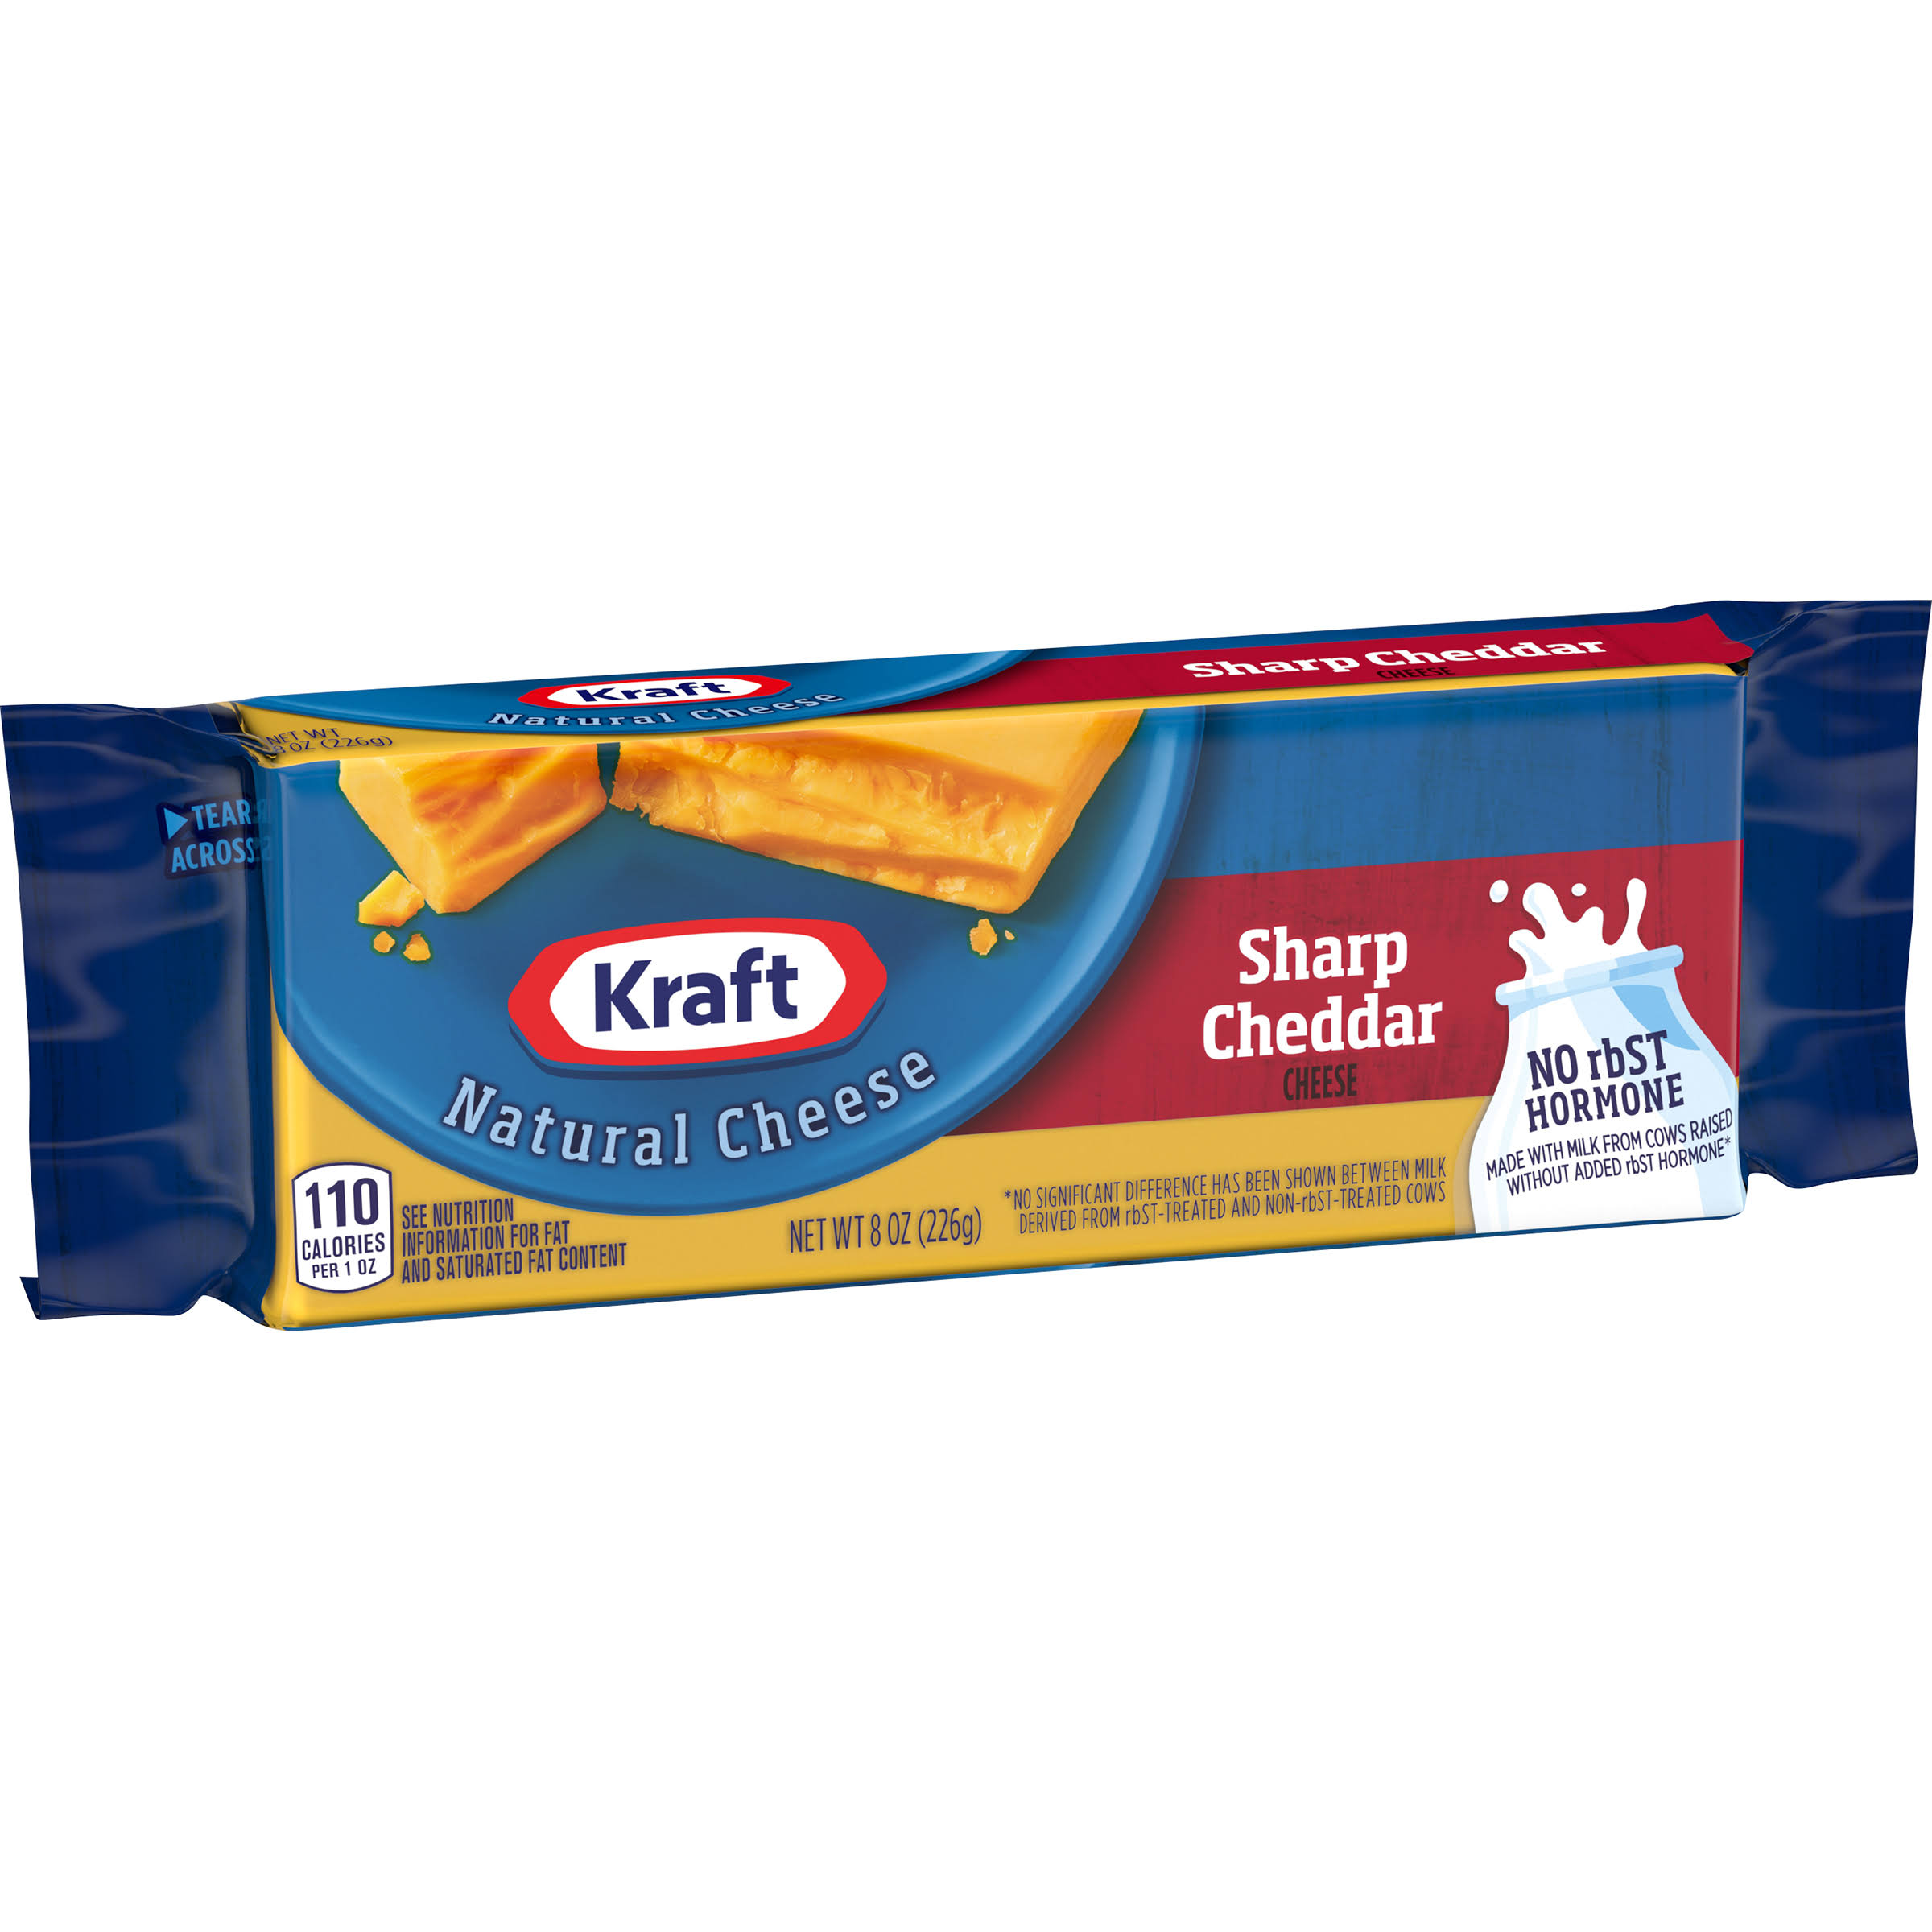 Kraft Sharp Cheddar Cheese - 225g